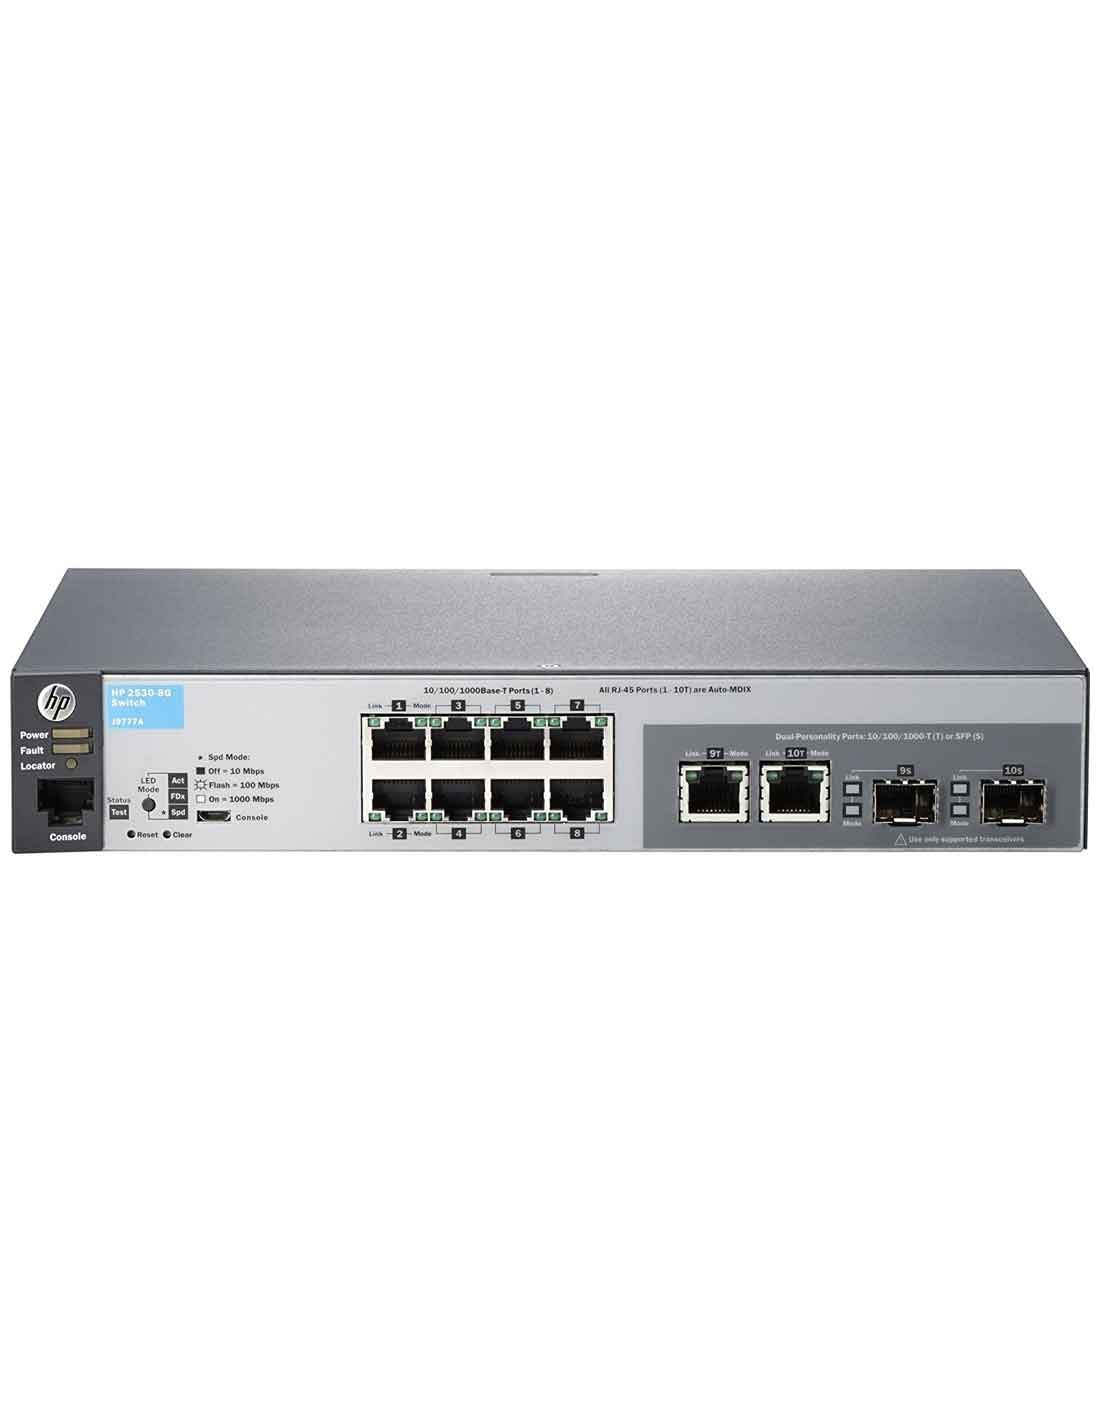 Aruba 2530 8G Switch (J9777A) at a cheap price and free delivery in Dubai